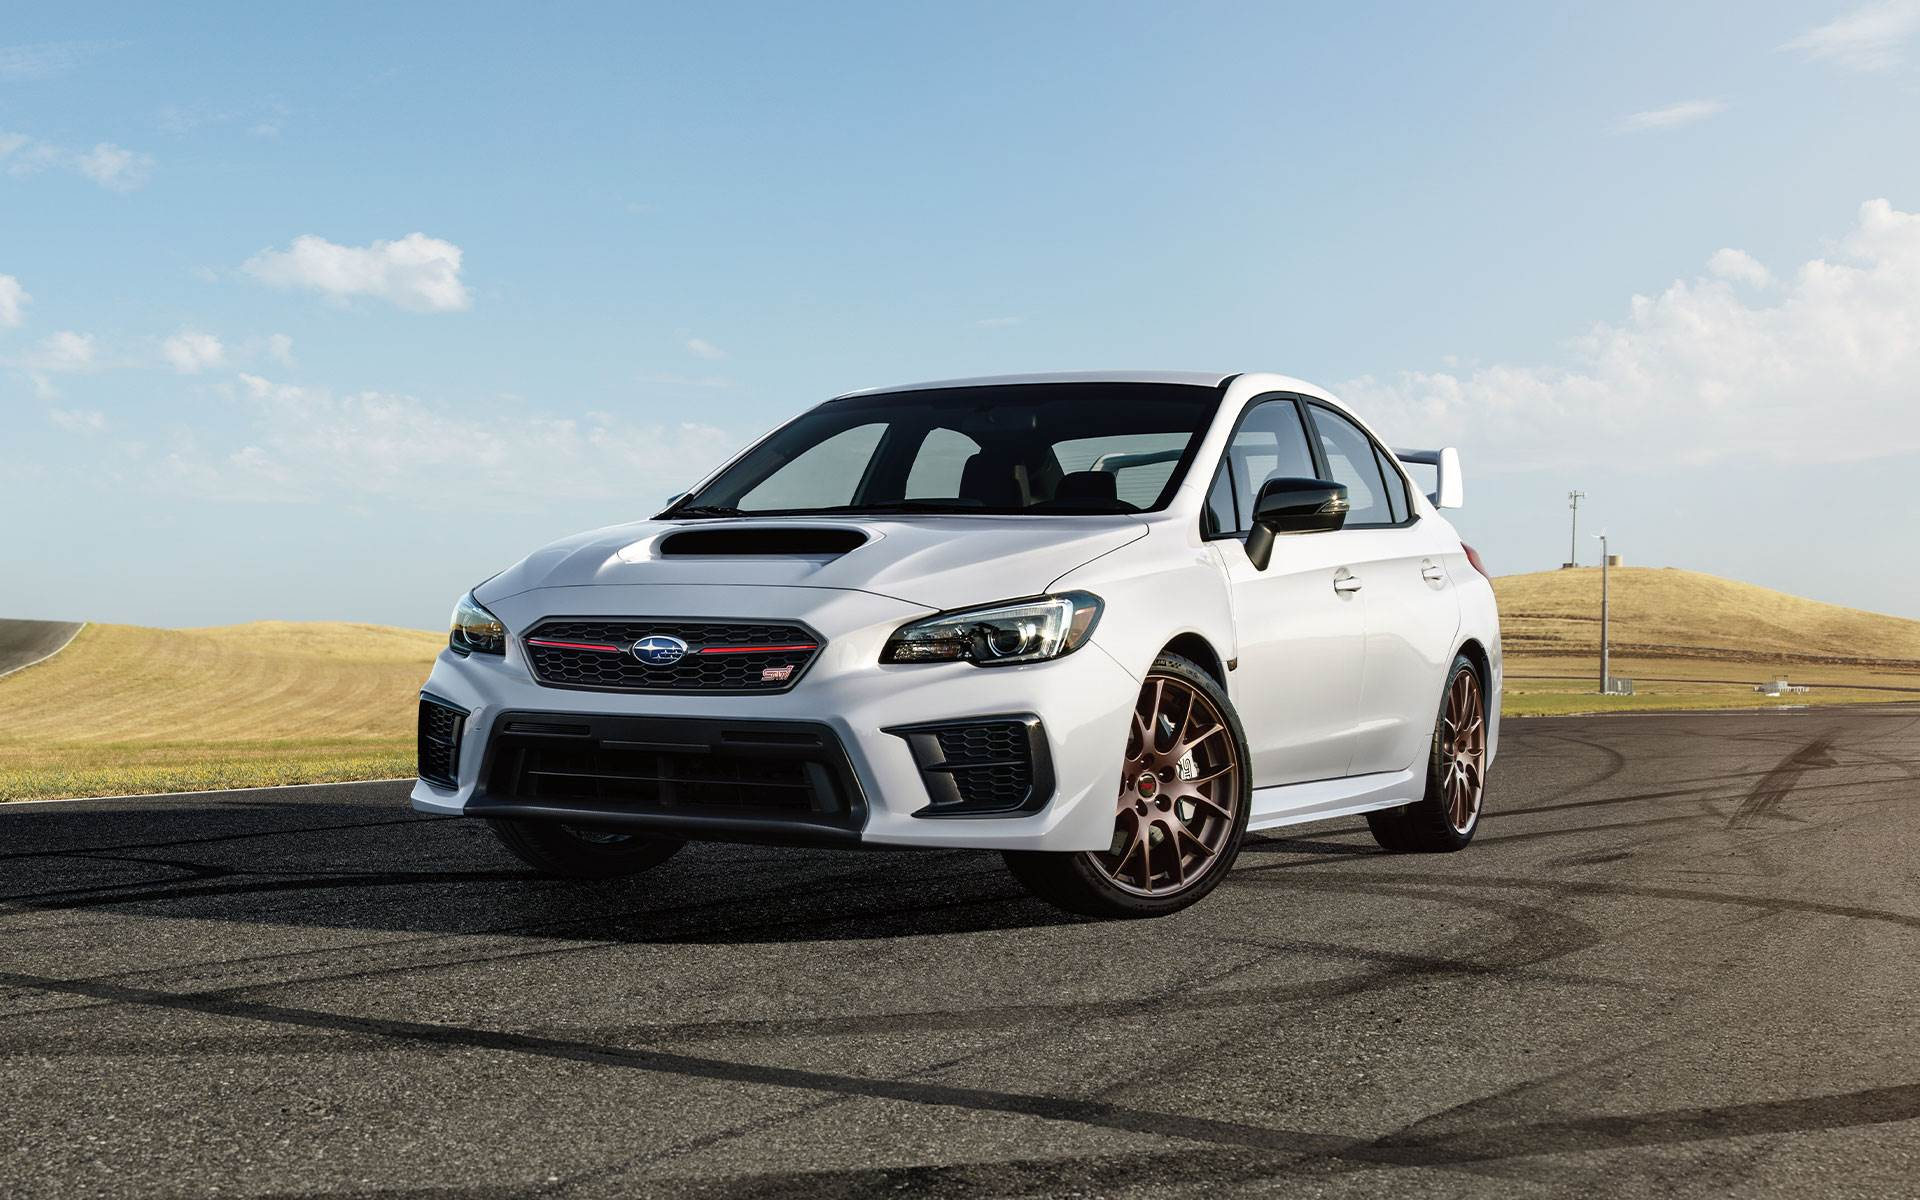 2020 Subaru WRX STI Series White NJ